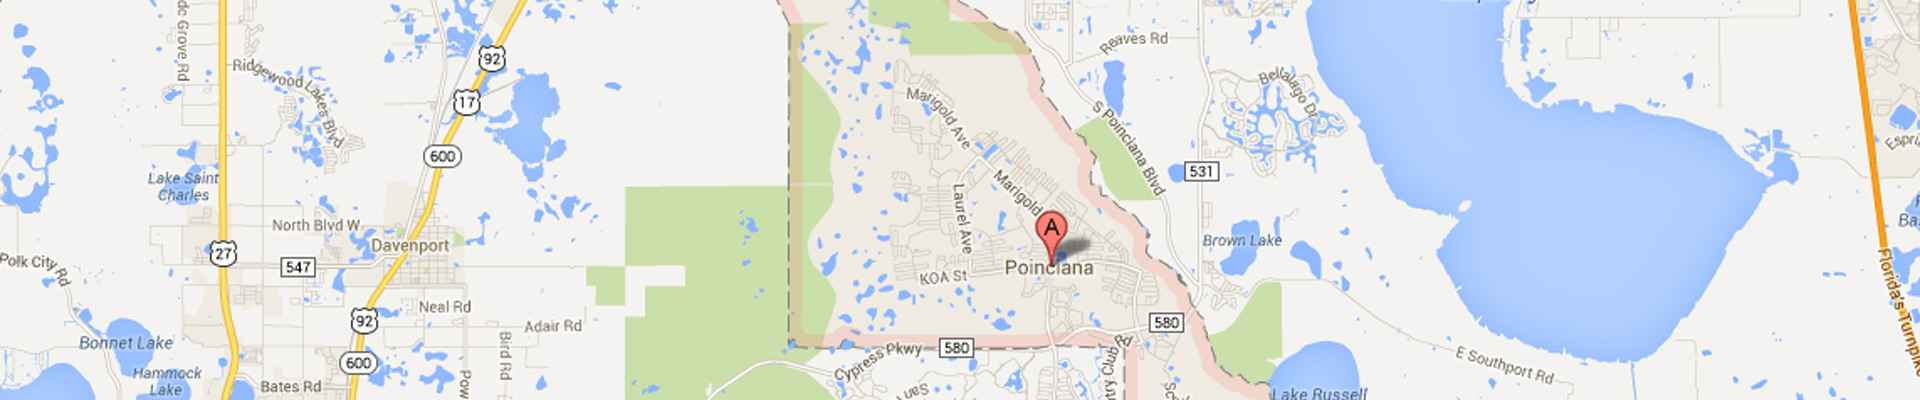 Poinciana Subway Locations